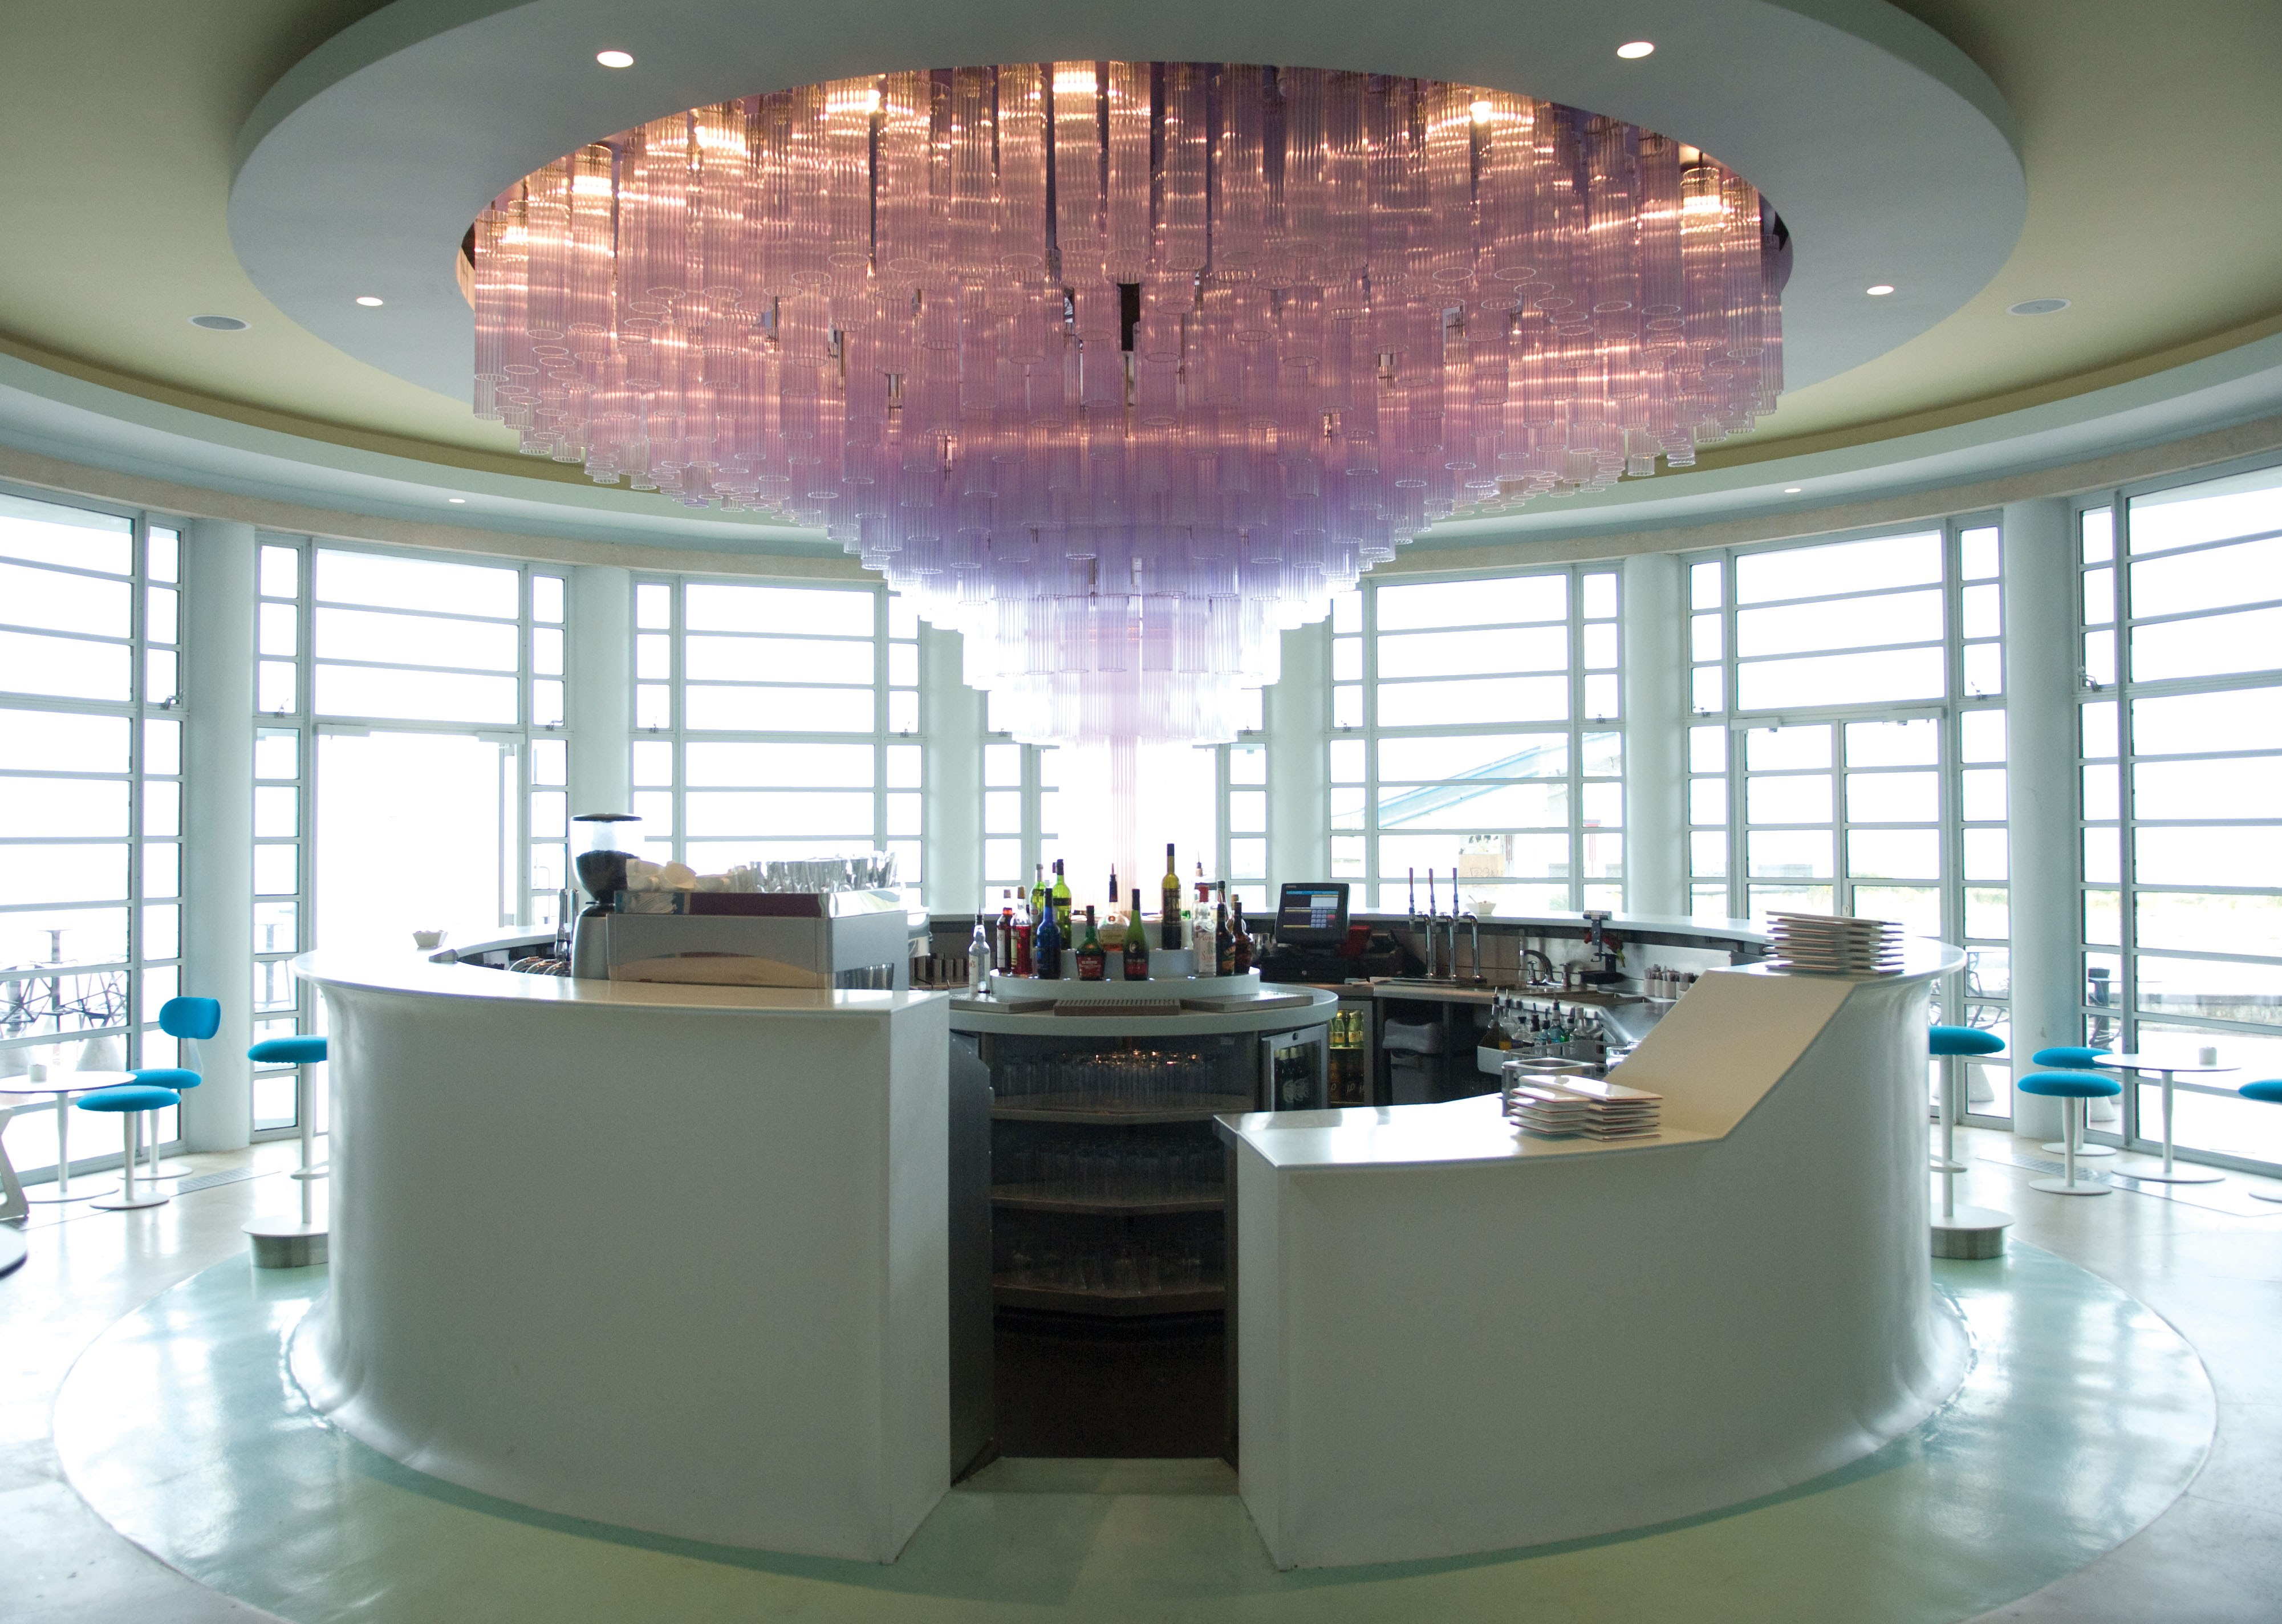 The Rotunda Bar at The Midland, Morecambe